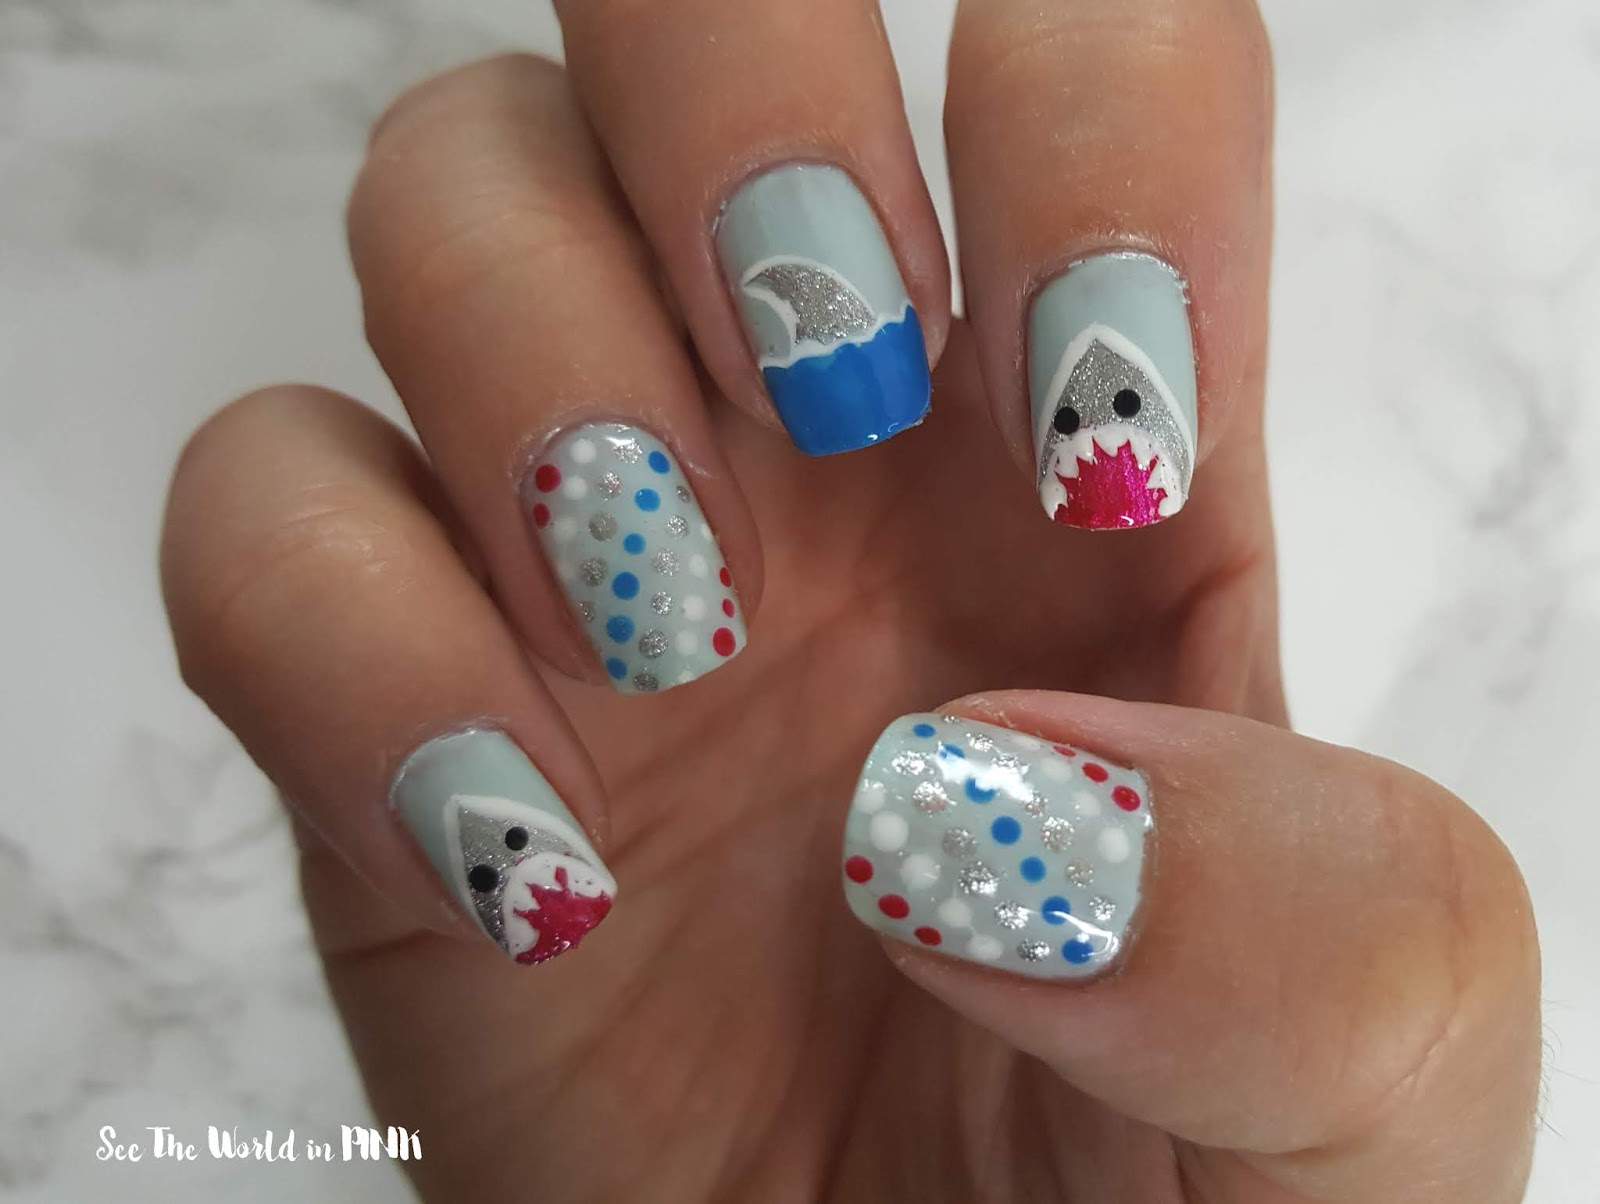 Manicure Monday - Shark Week Nails!